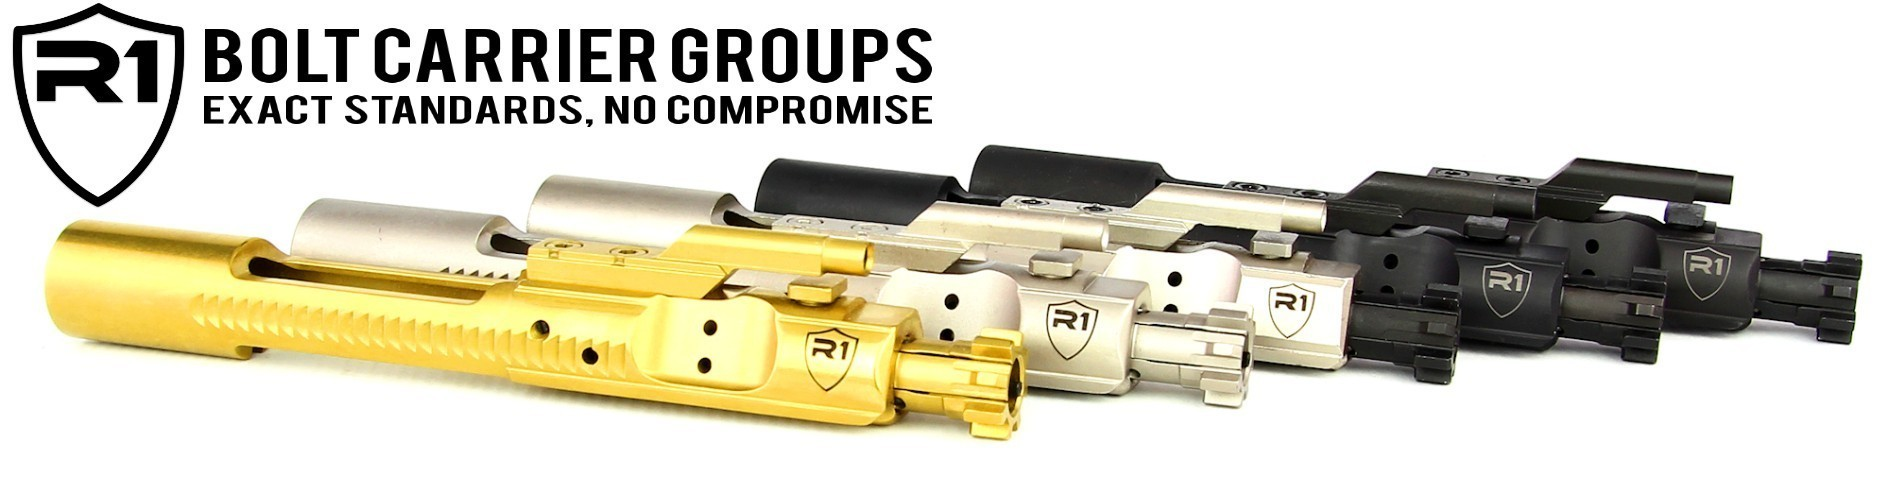 R1 Tactical Complete Bolt Carrier Groups - Titanium Nitride (TiN) Nickel Boron (NiB) Phosphate Chrome Lined BCG